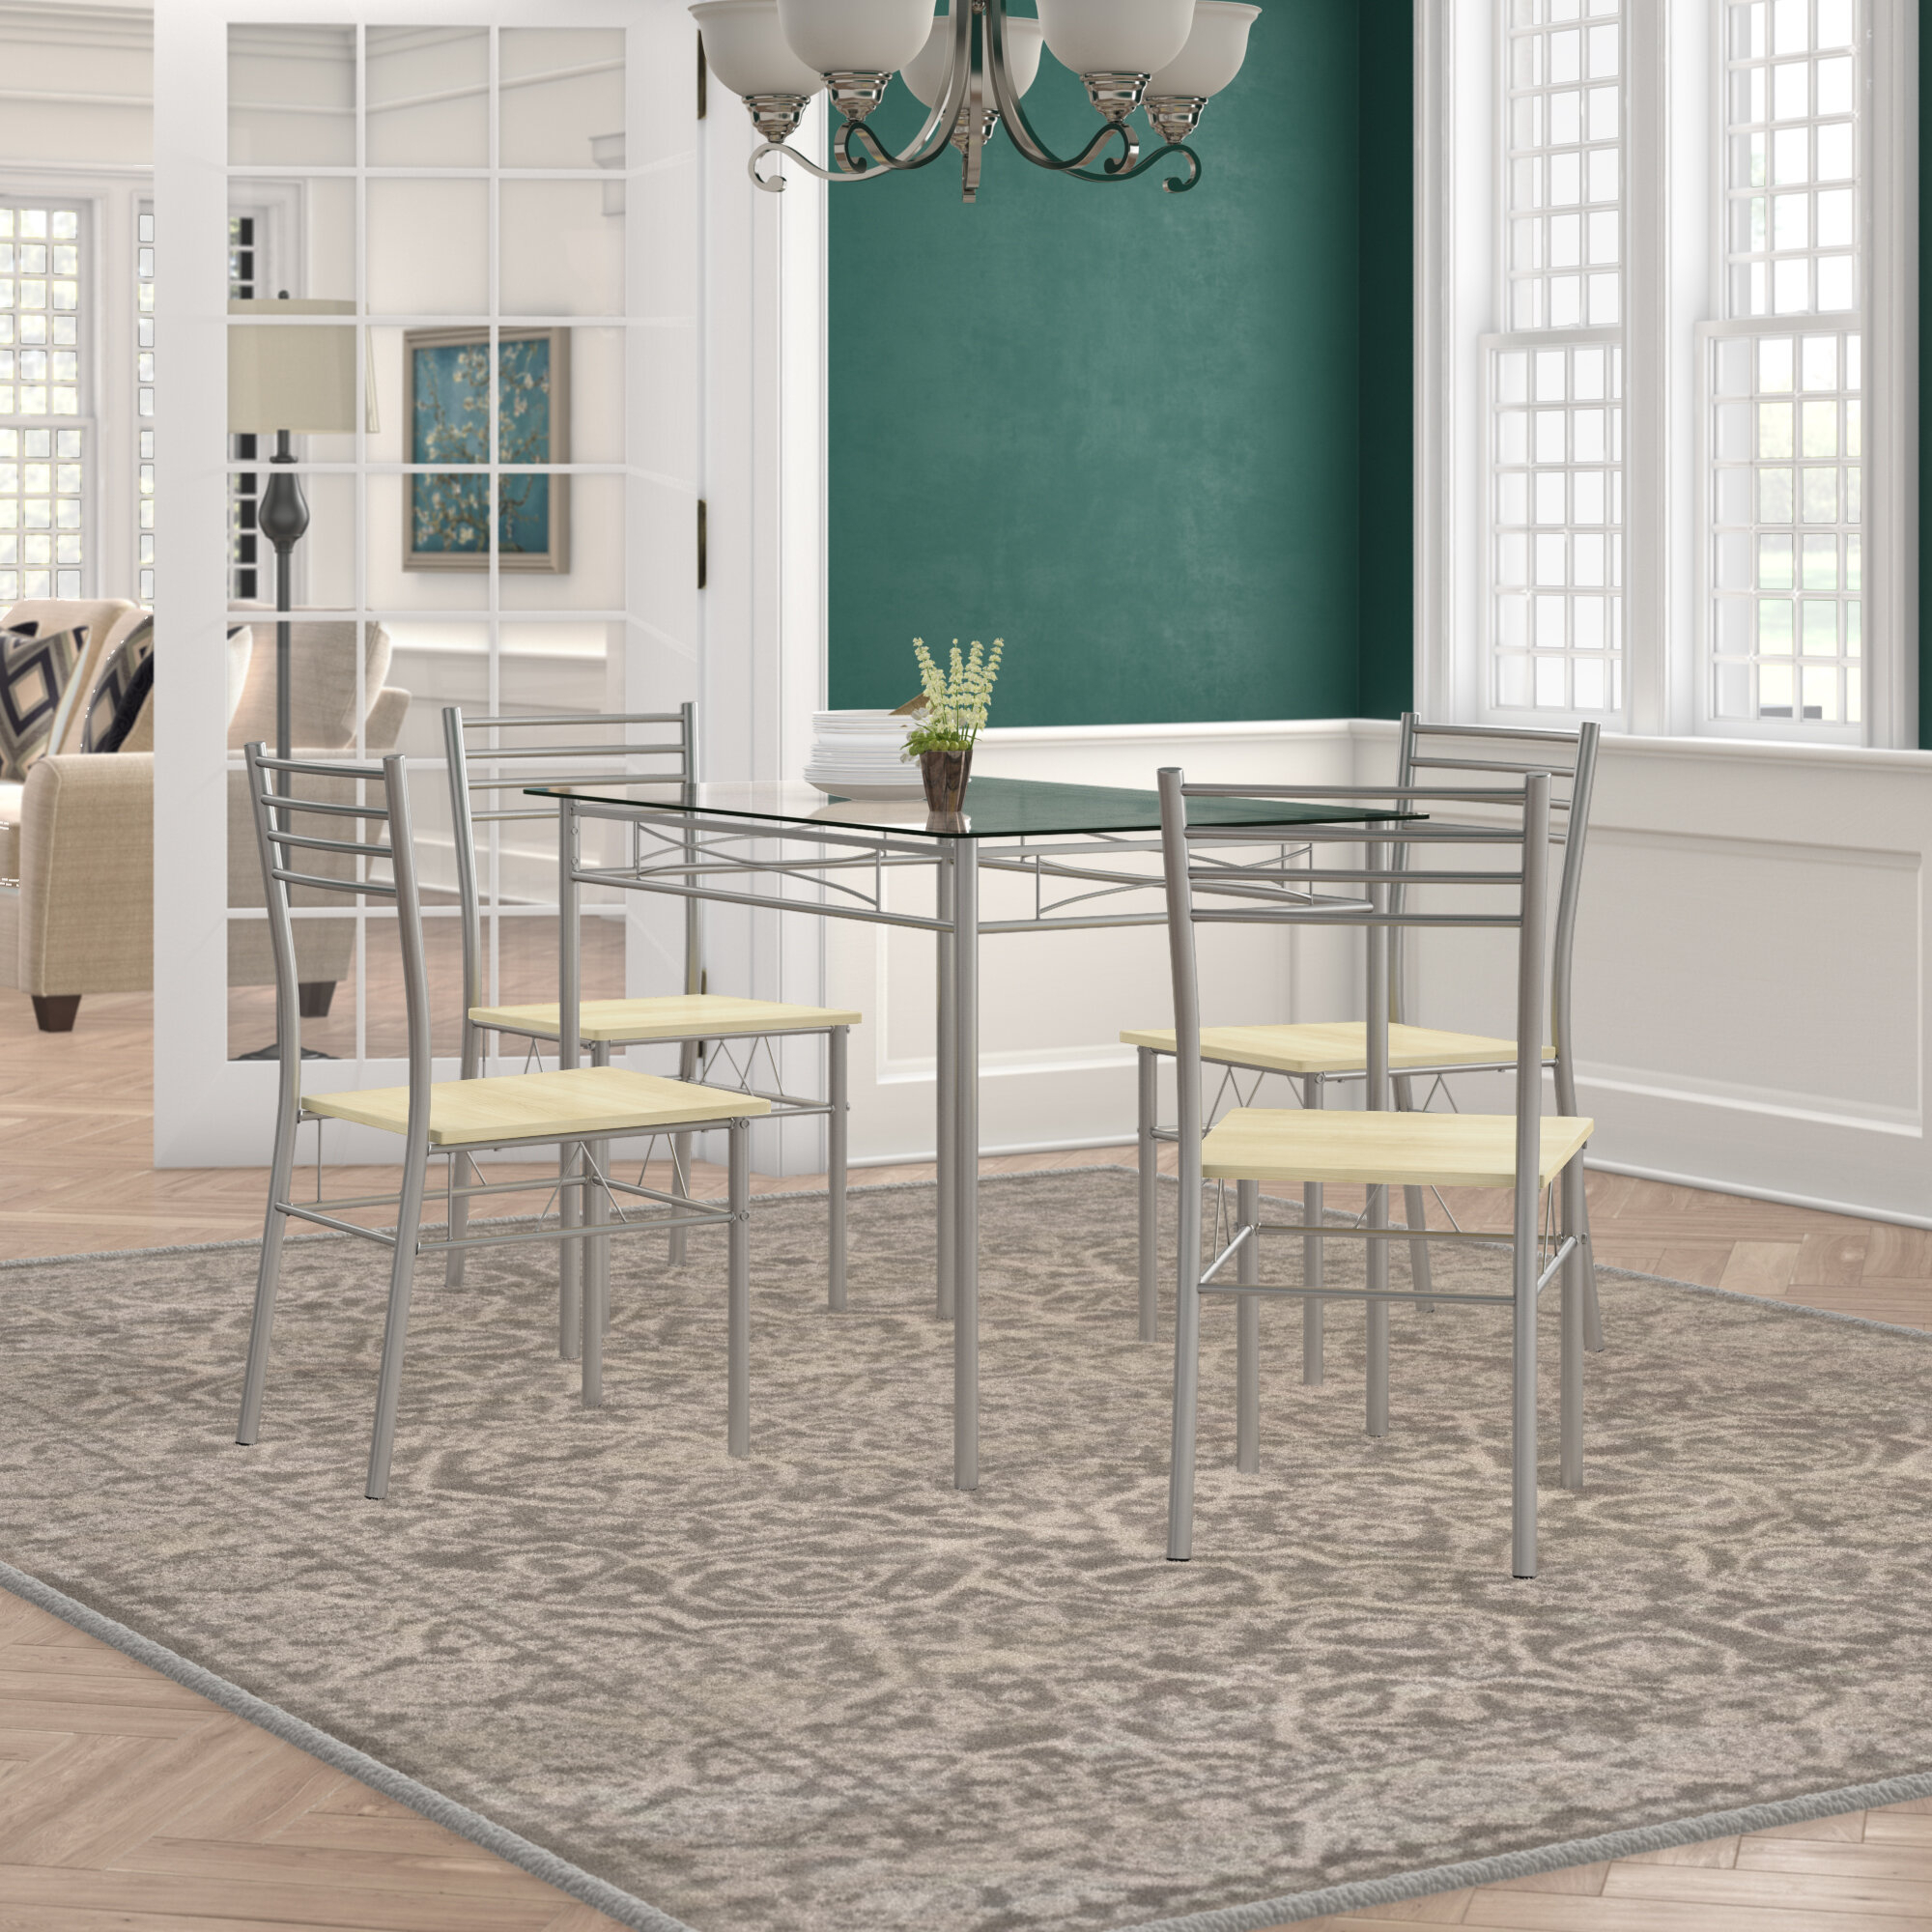 Tavarez 5 Piece Dining Set Throughout Most Popular Tavarez 5 Piece Dining Sets (Photo 1 of 20)